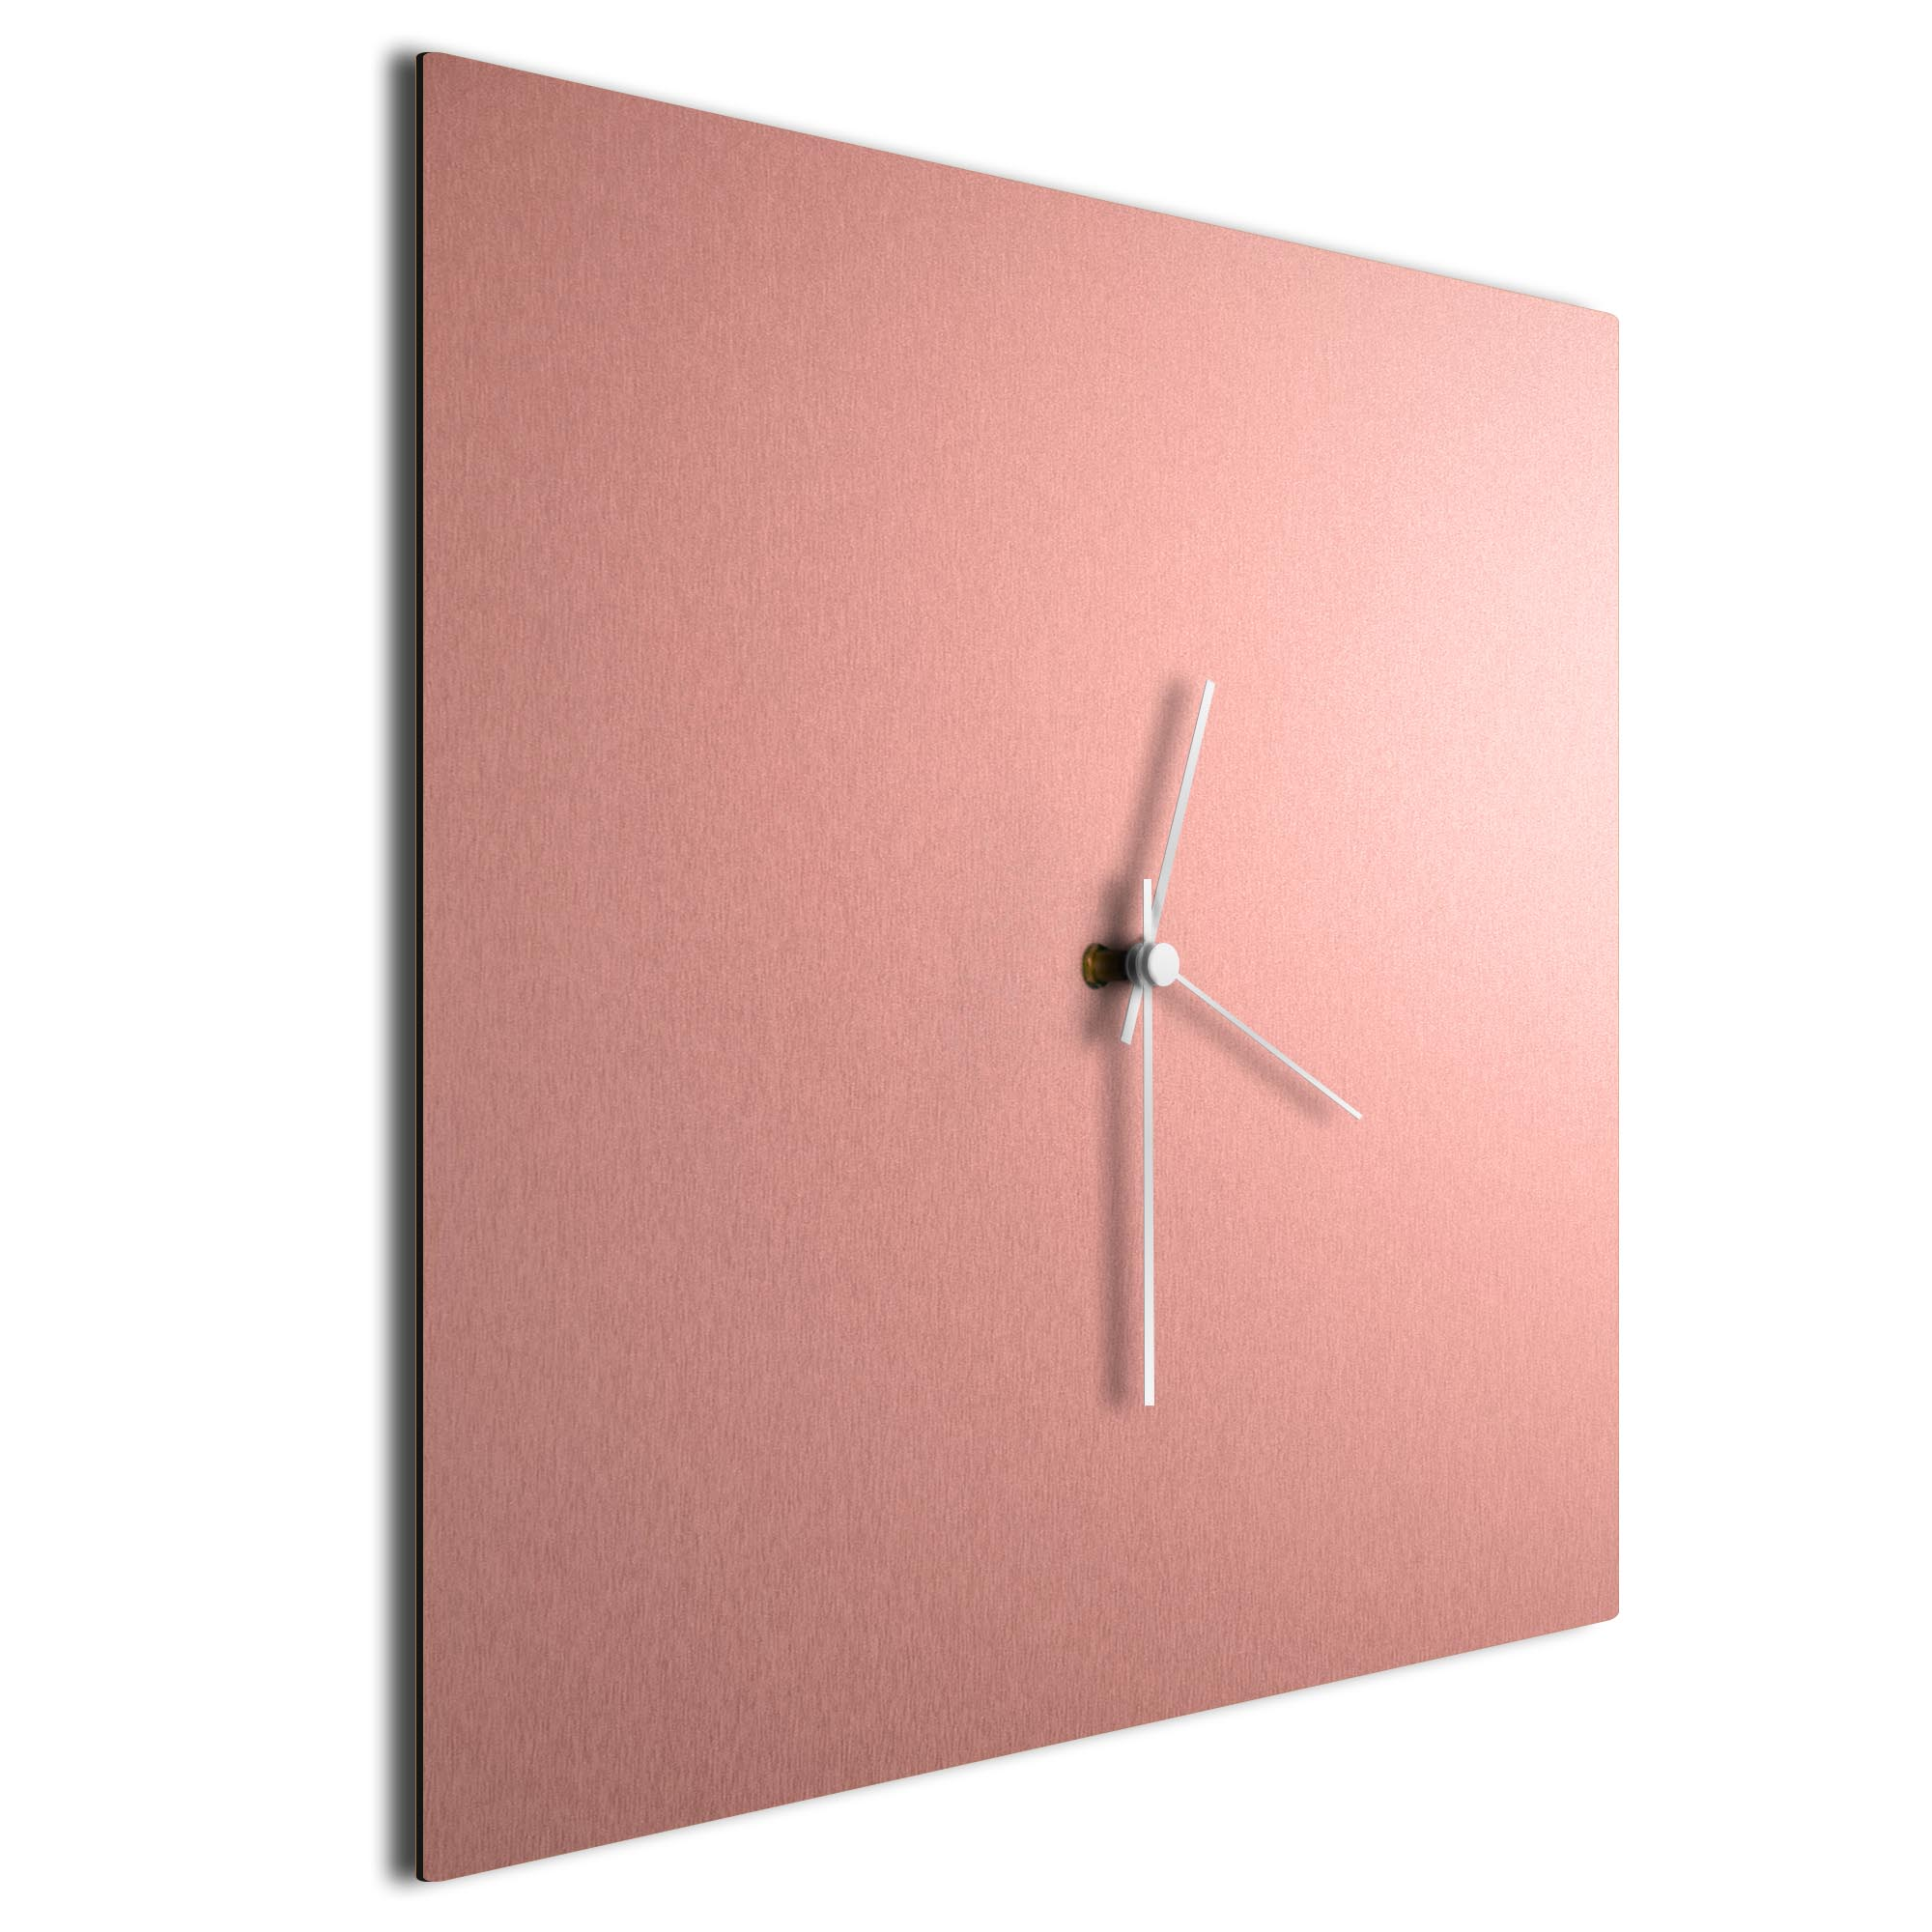 Coppersmith Square Clock Large White - Image 2